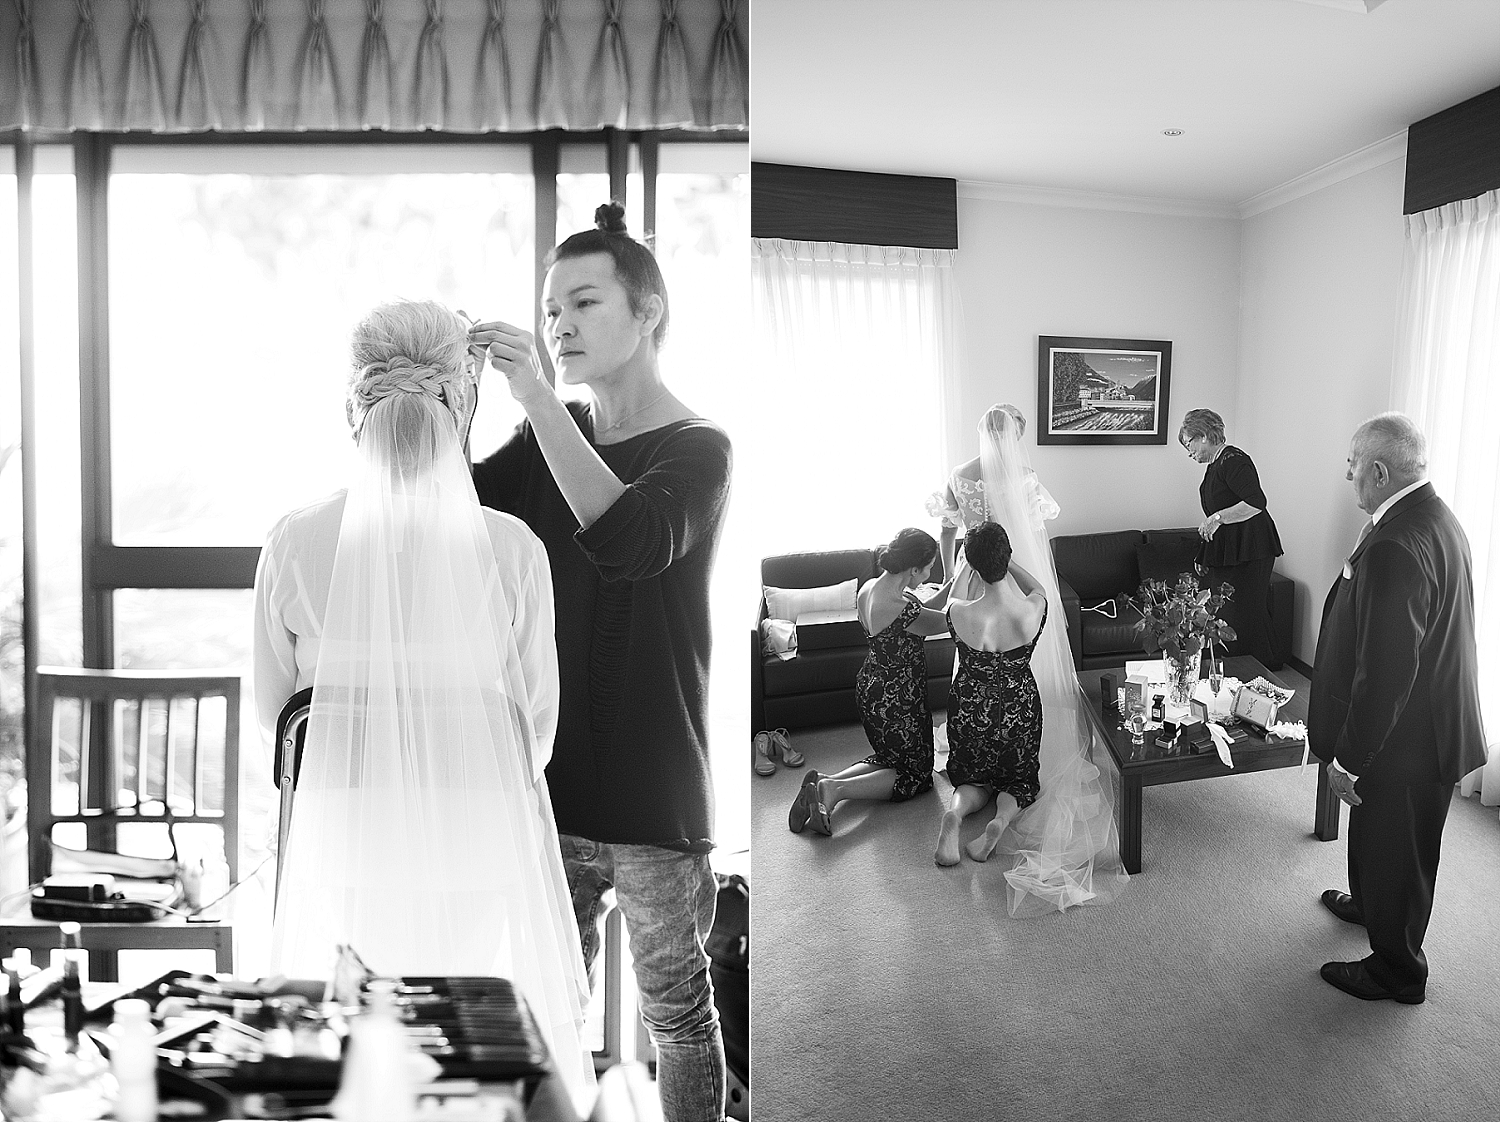 11st michaels archangel wedding perth12.JPG